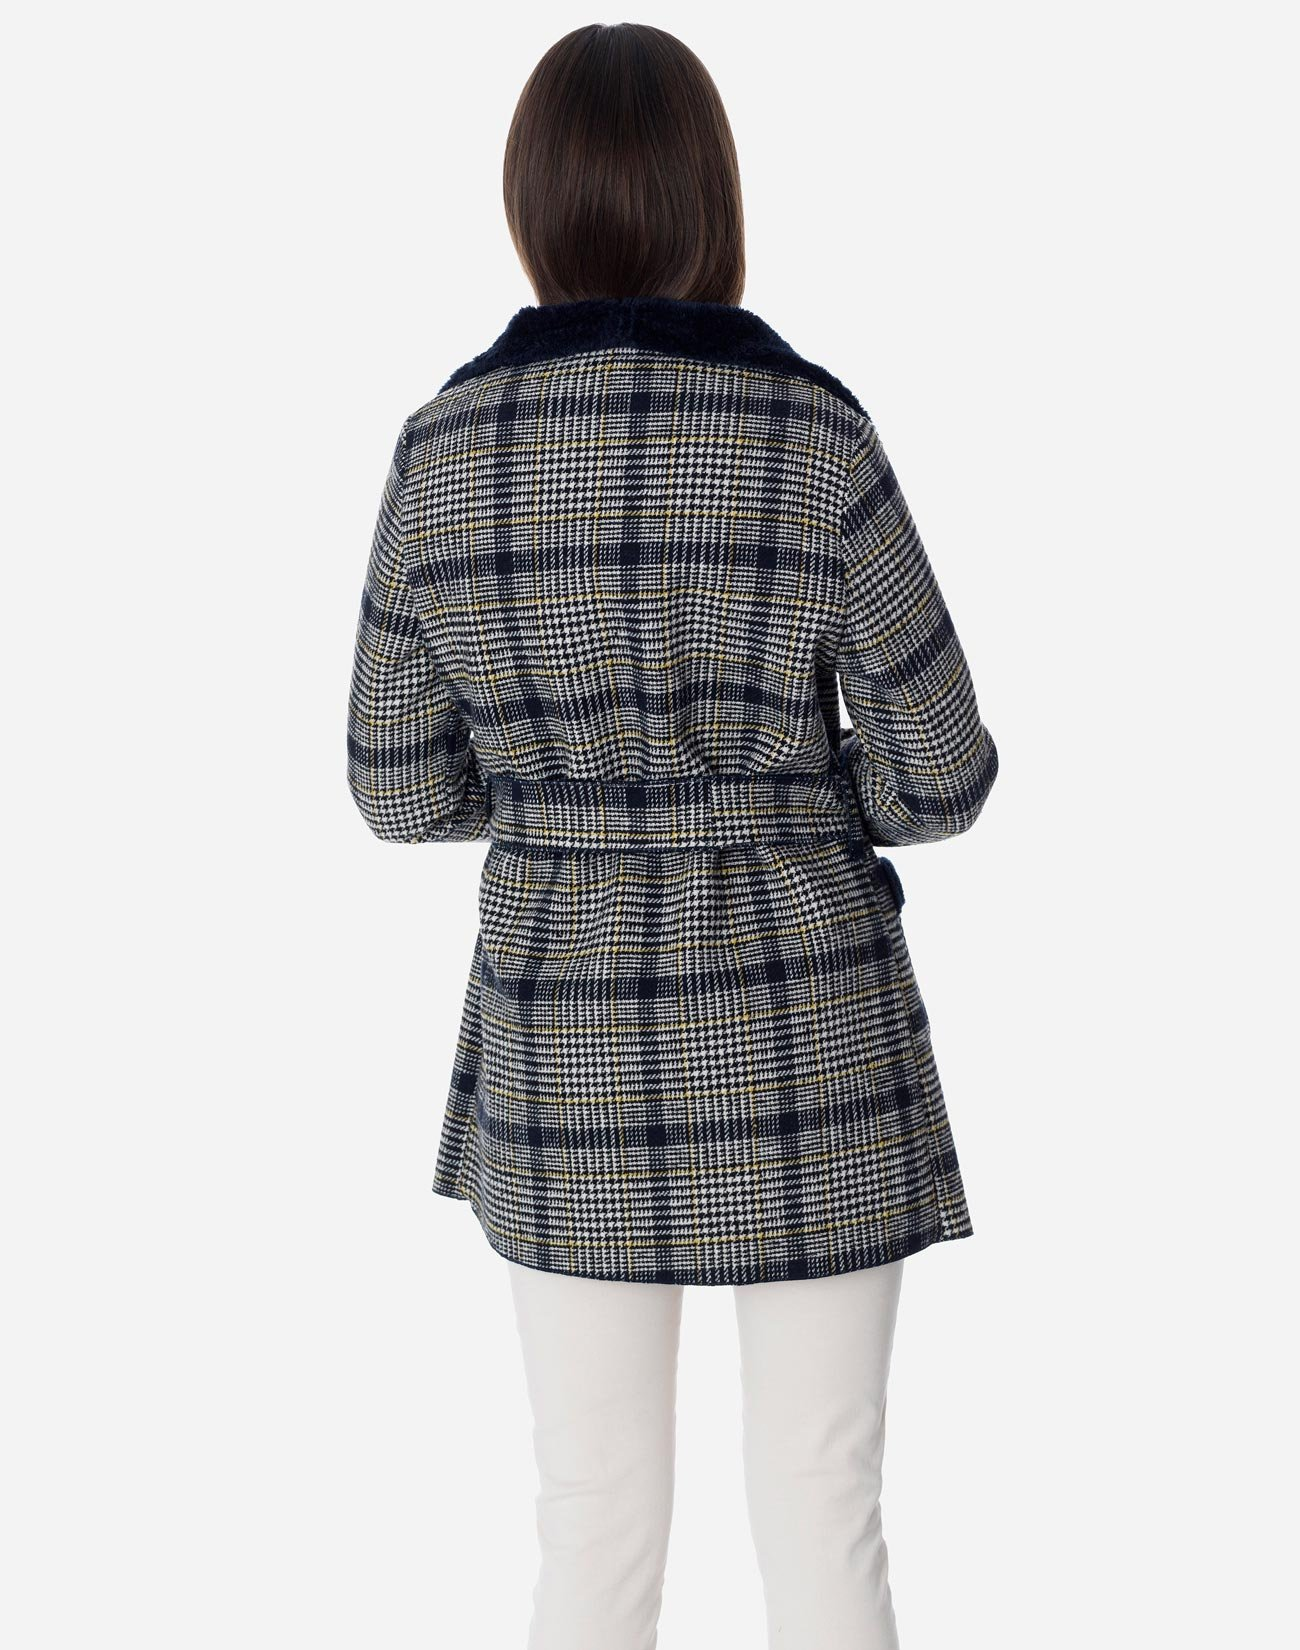 Plaid coat with pockets